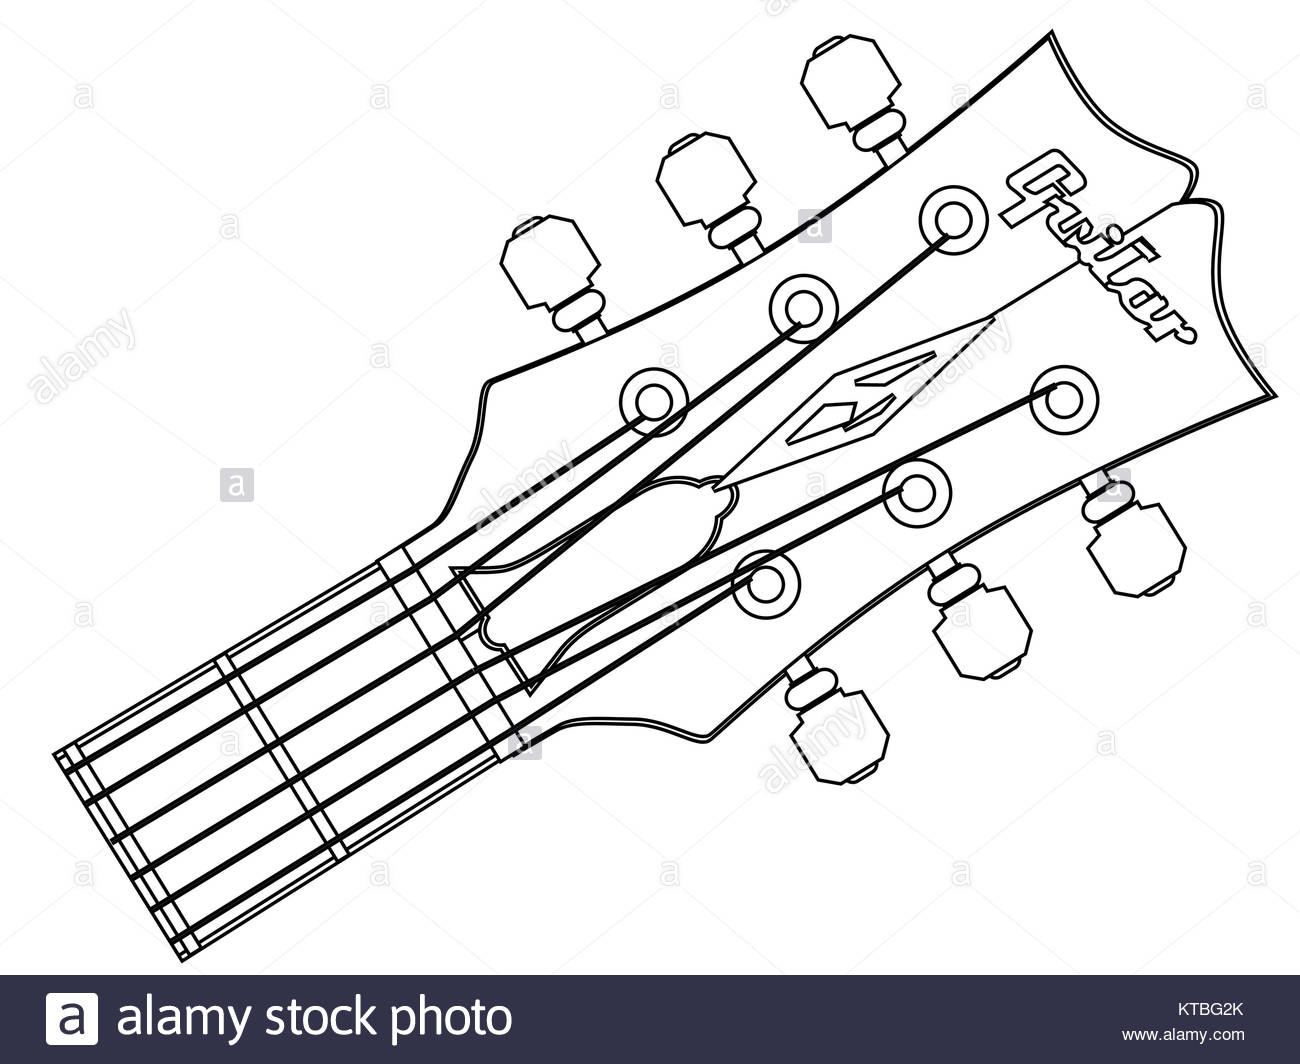 Gibson Les Paul Drawing At Free For Personal Use 50s Wiring Diagram 1300x1064 Black And White Stock Photos Amp Images